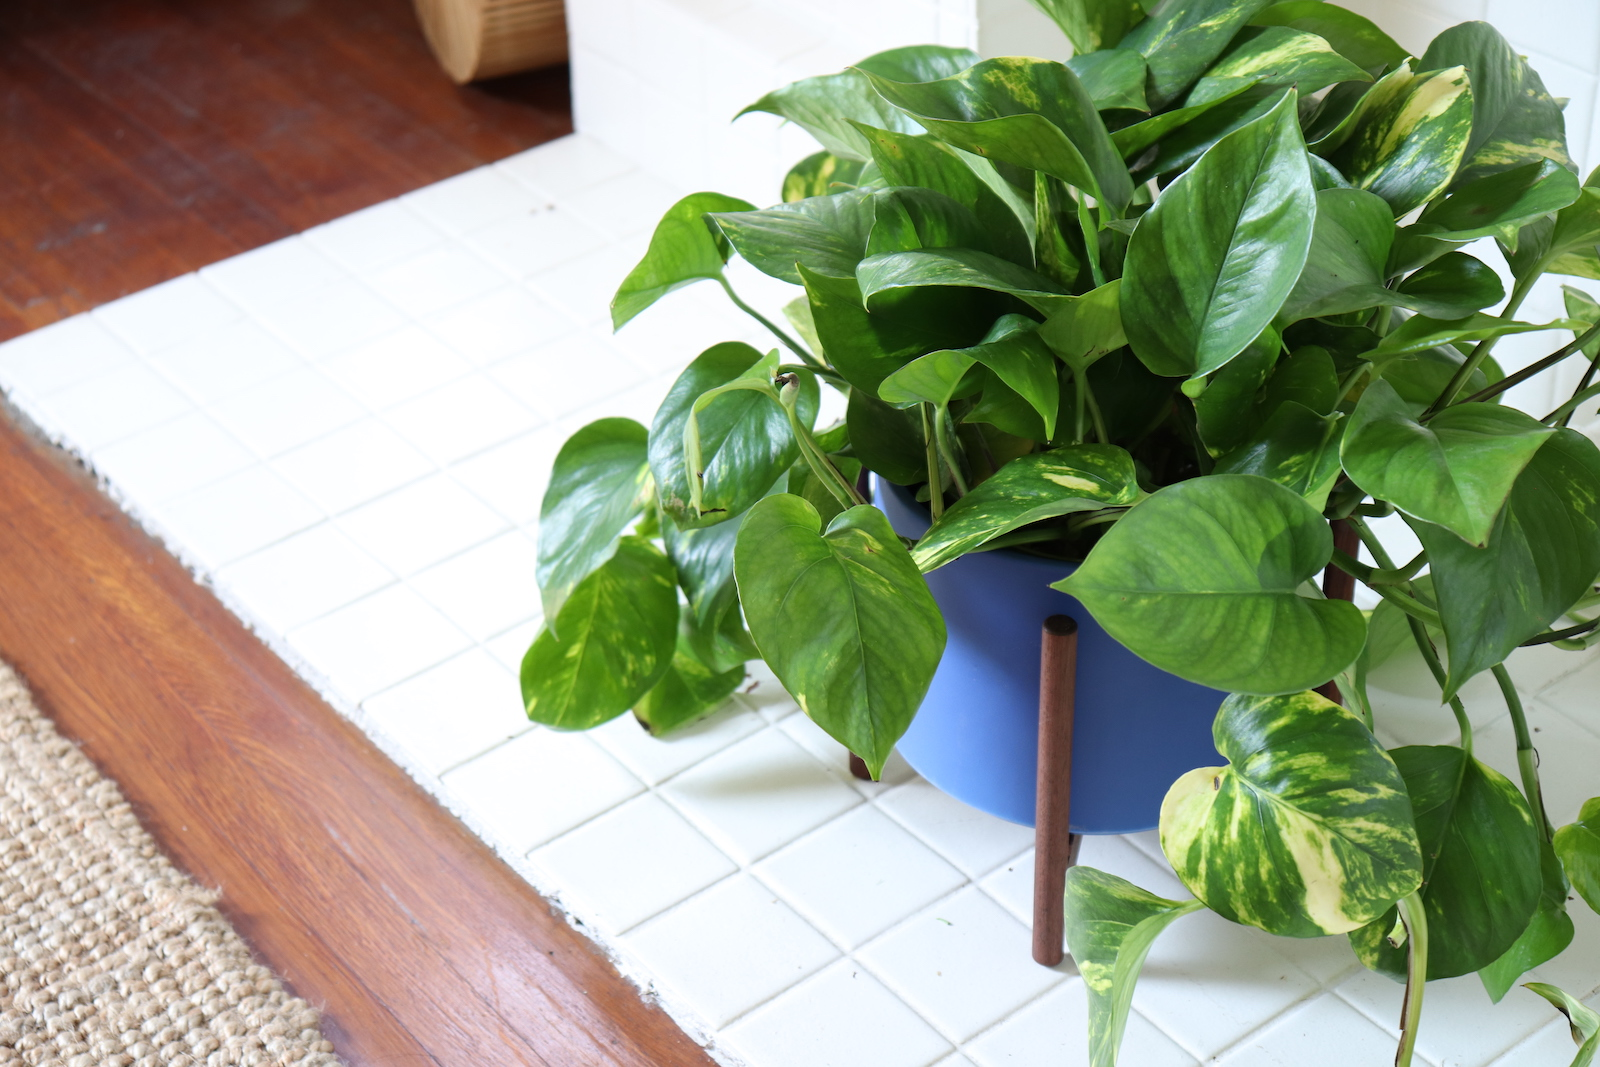 The Pothos or Devil's Ivy is an easy care plant perfect for the bathroom